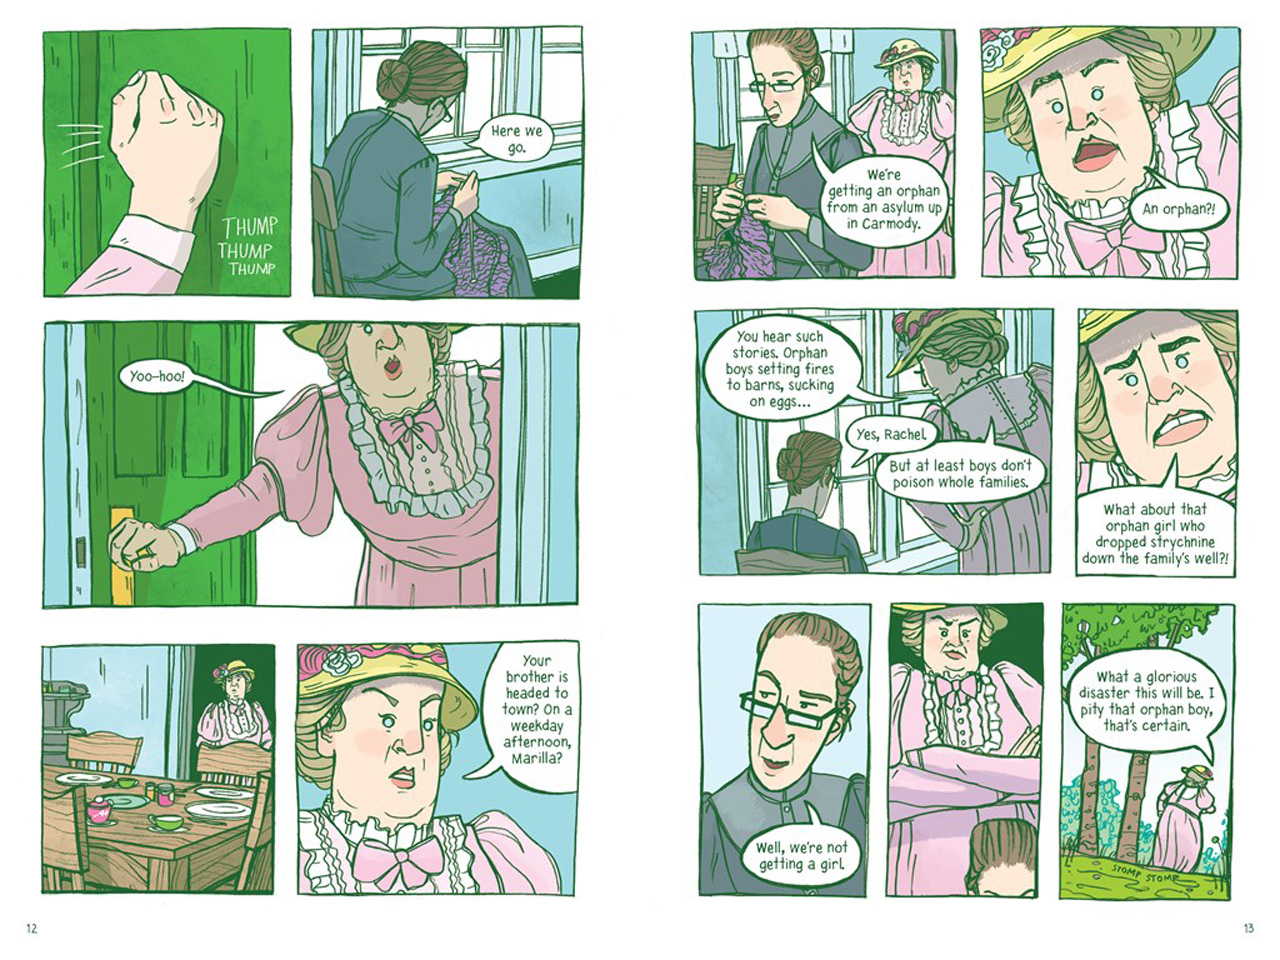 graphic novel of a scene from Anne of Green Gables where Rachel investigates what's going on